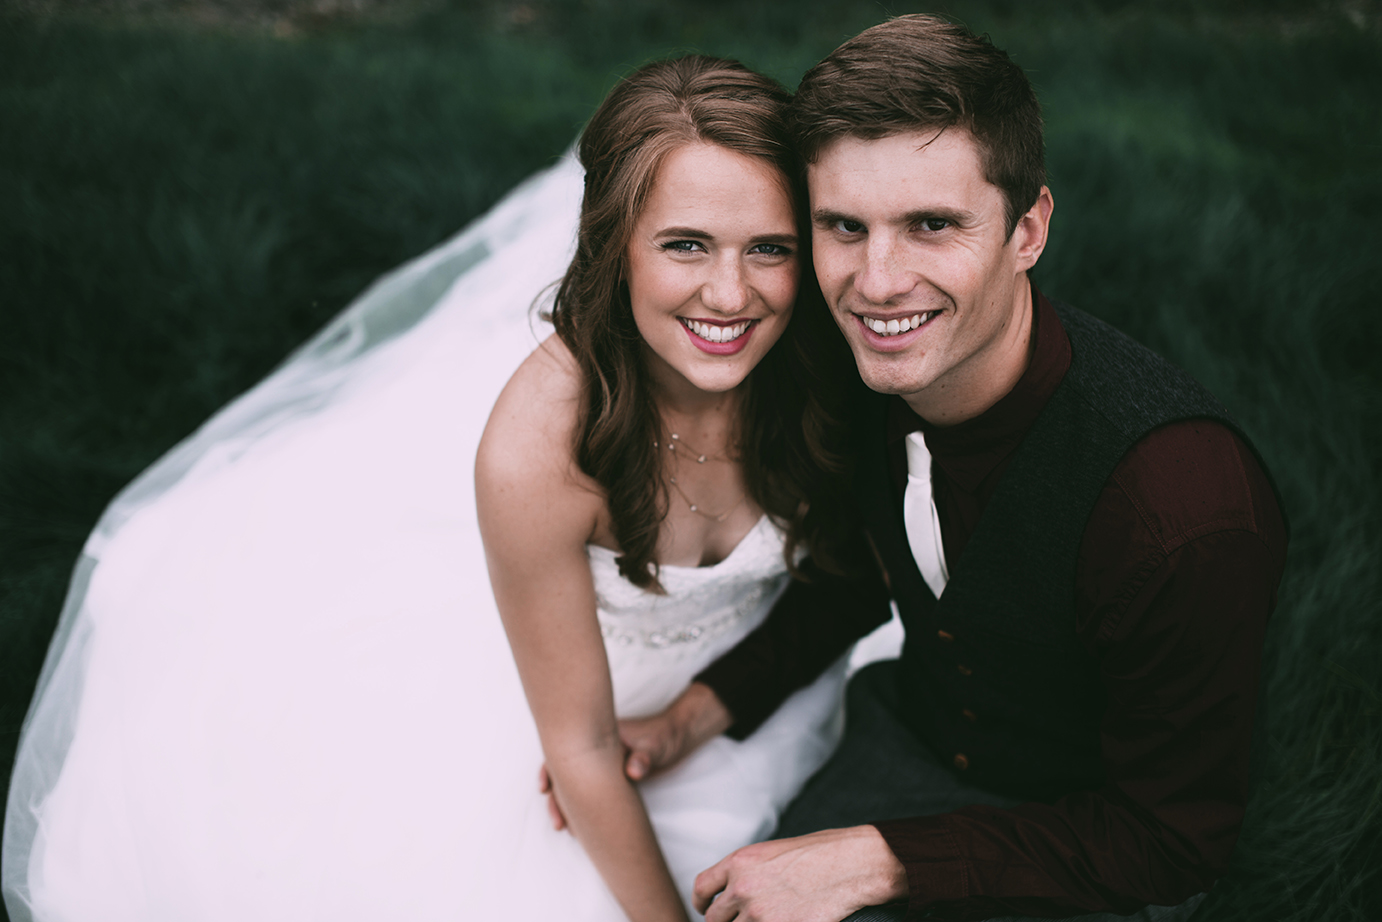 BethAnne and Levi 215.jpg